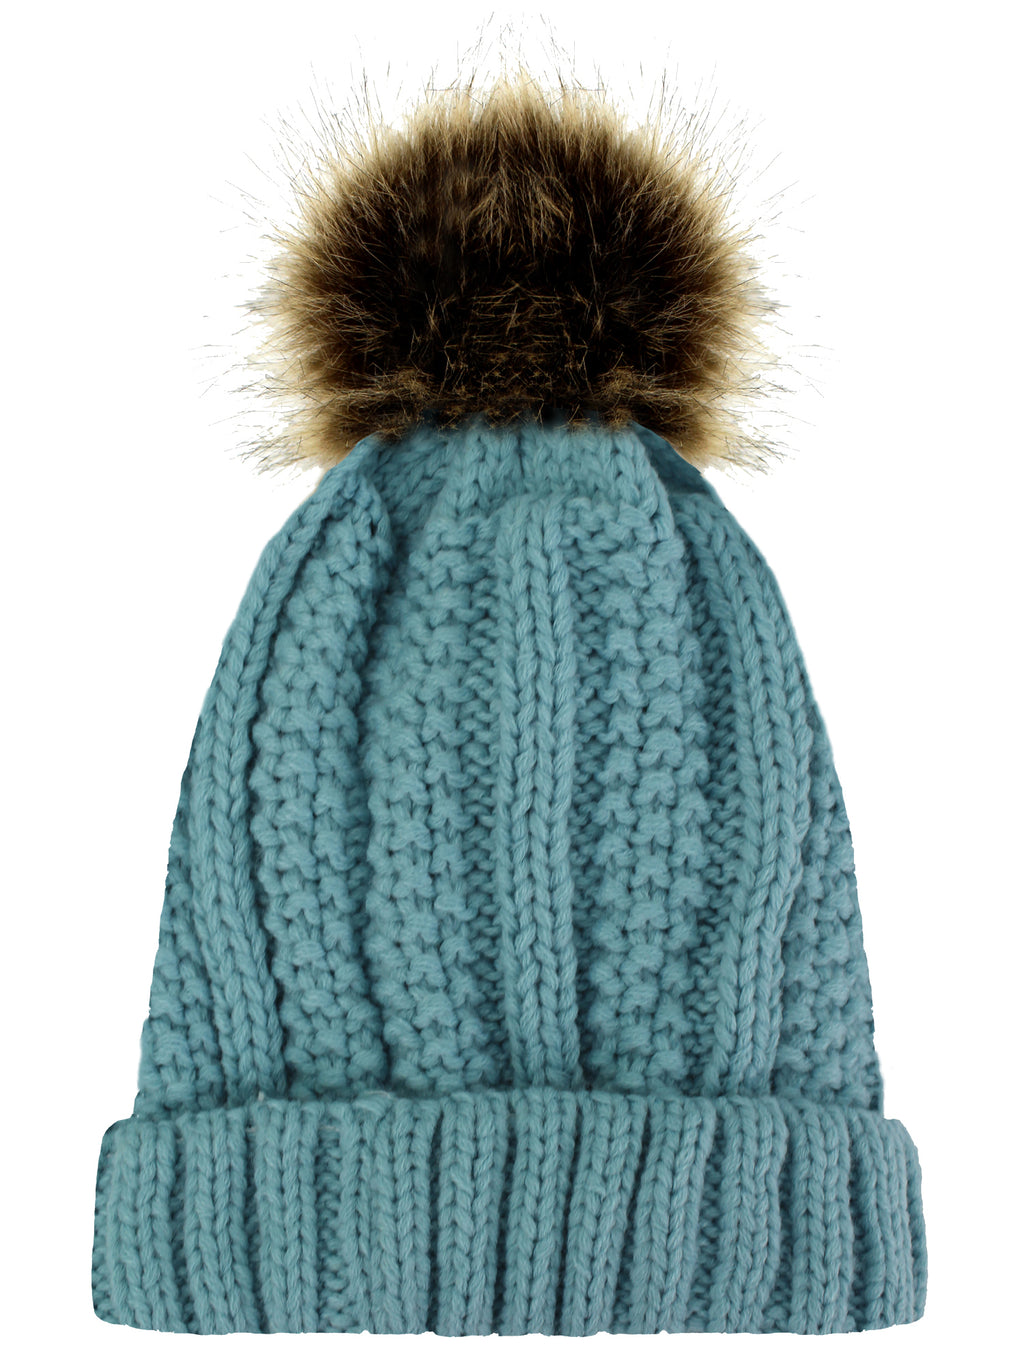 Blue Ribbed Beanie Cap With Fur Pom Pom